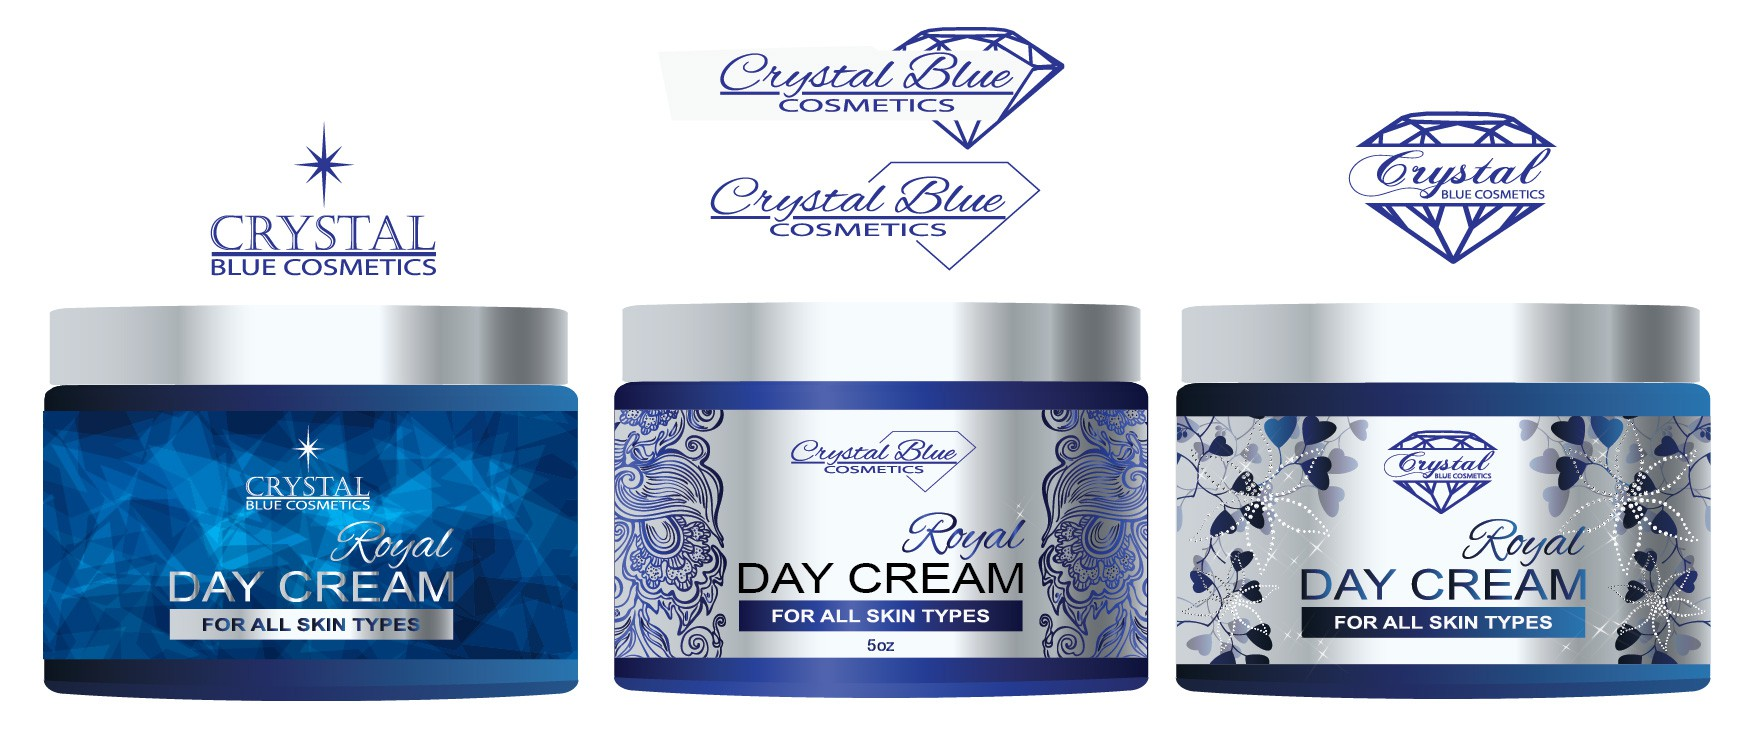 Create the next product label for Crystal Blue Cosmetics